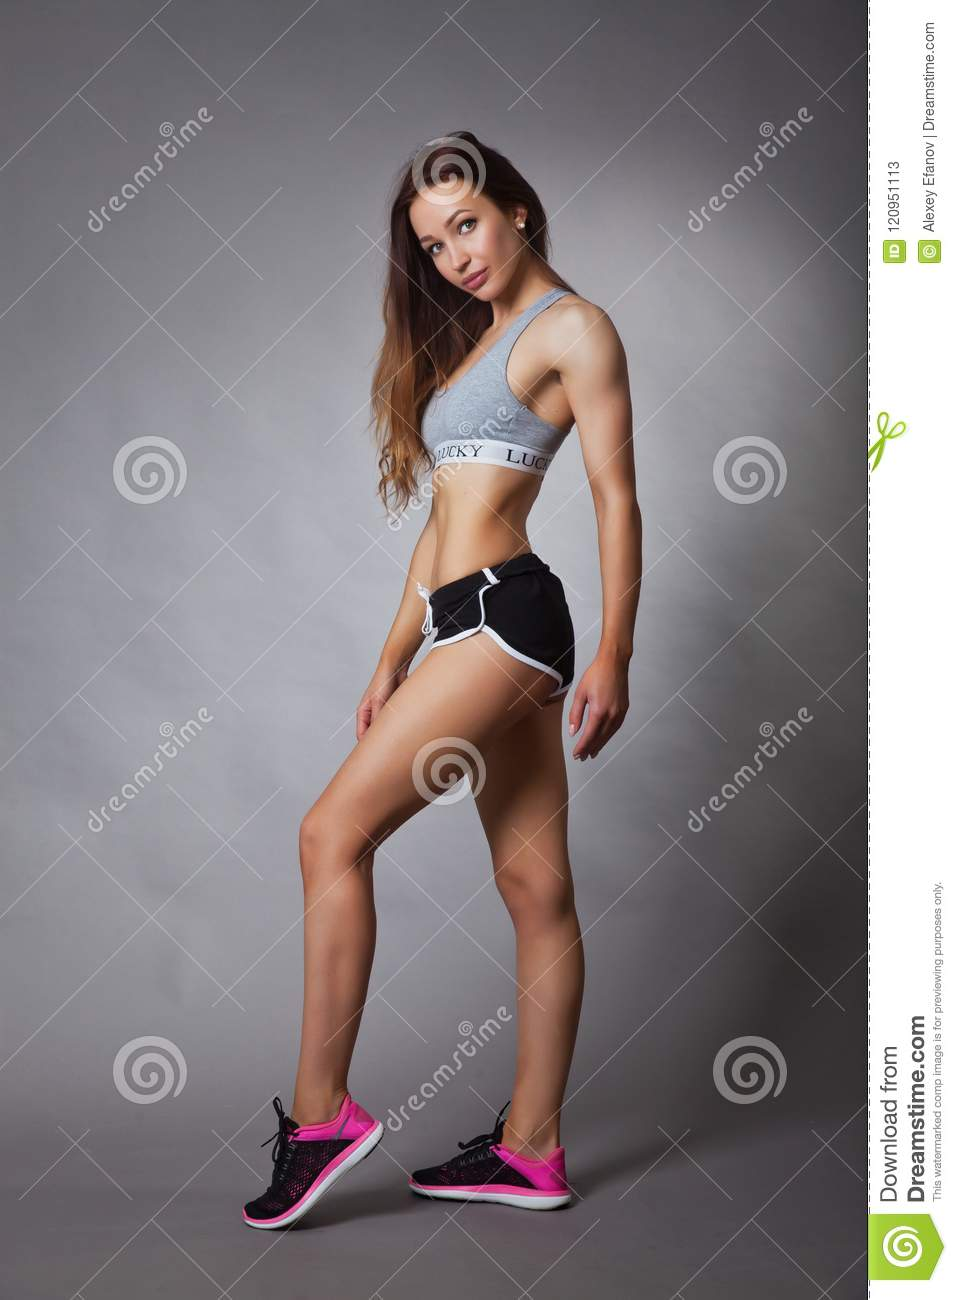 892a226253 Sporty and slim girl stock image. Image of clothing - 120951113